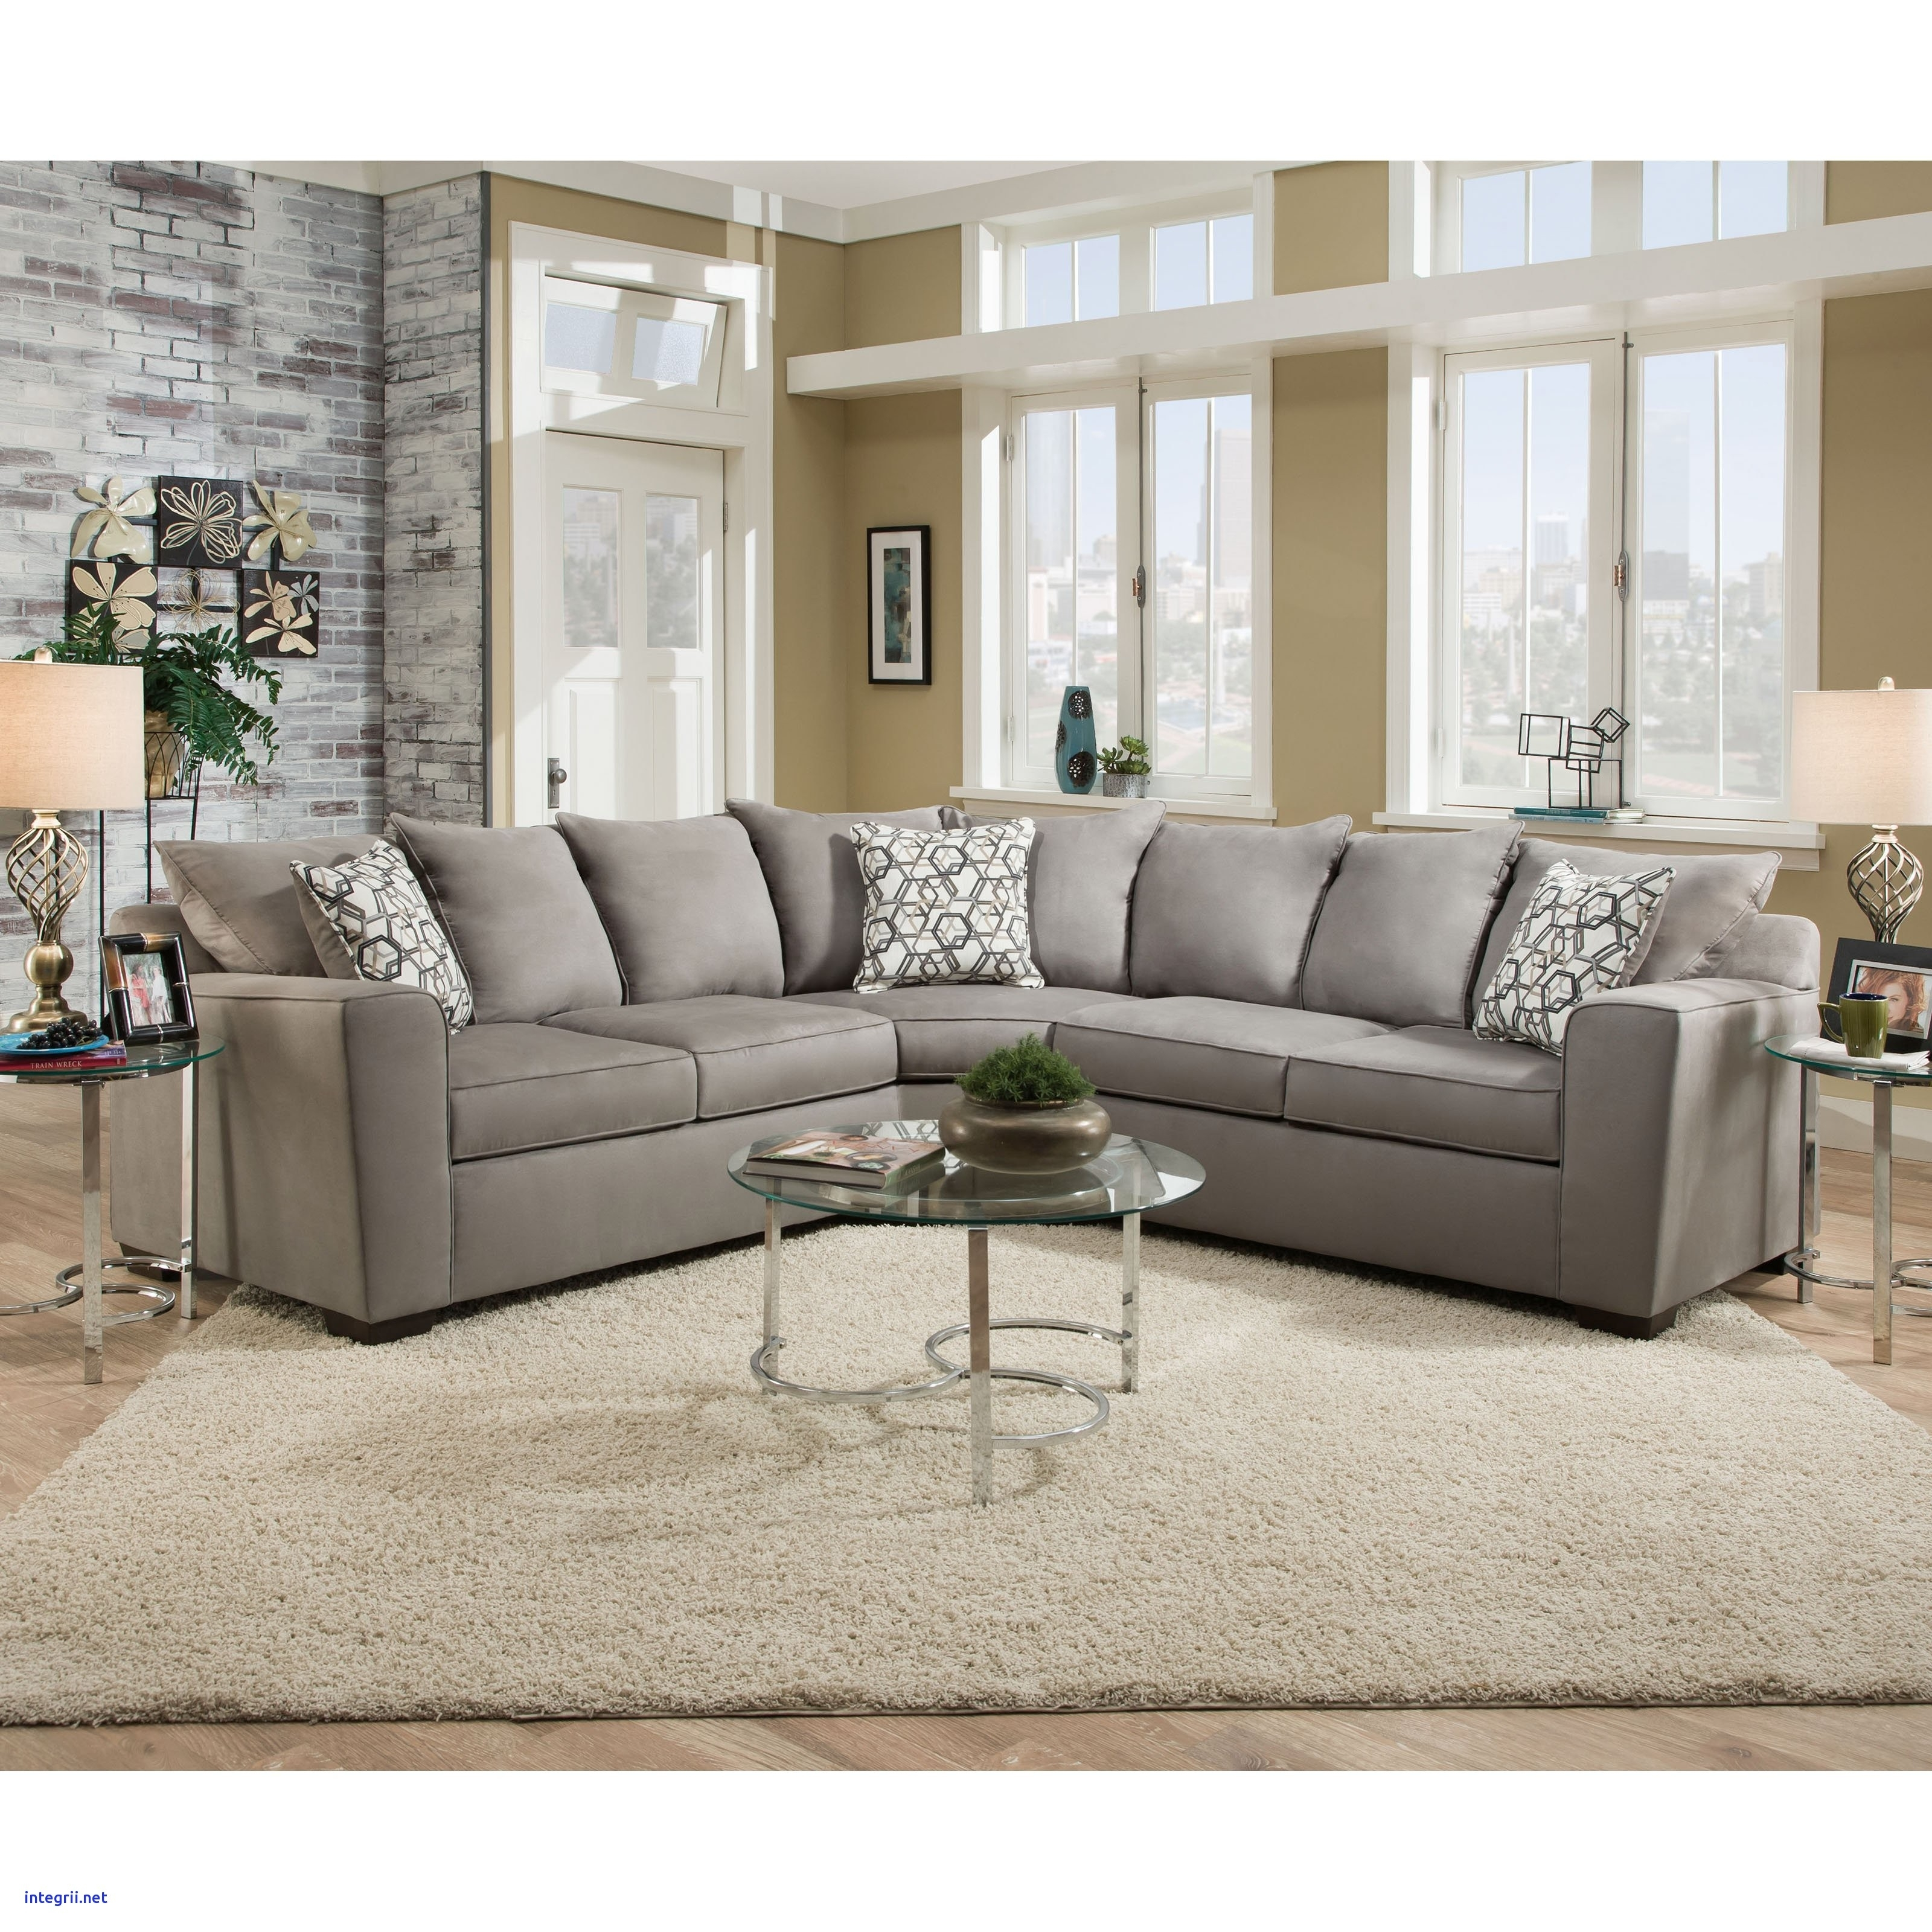 Featured Image of Home Furniture Sectional Sofas